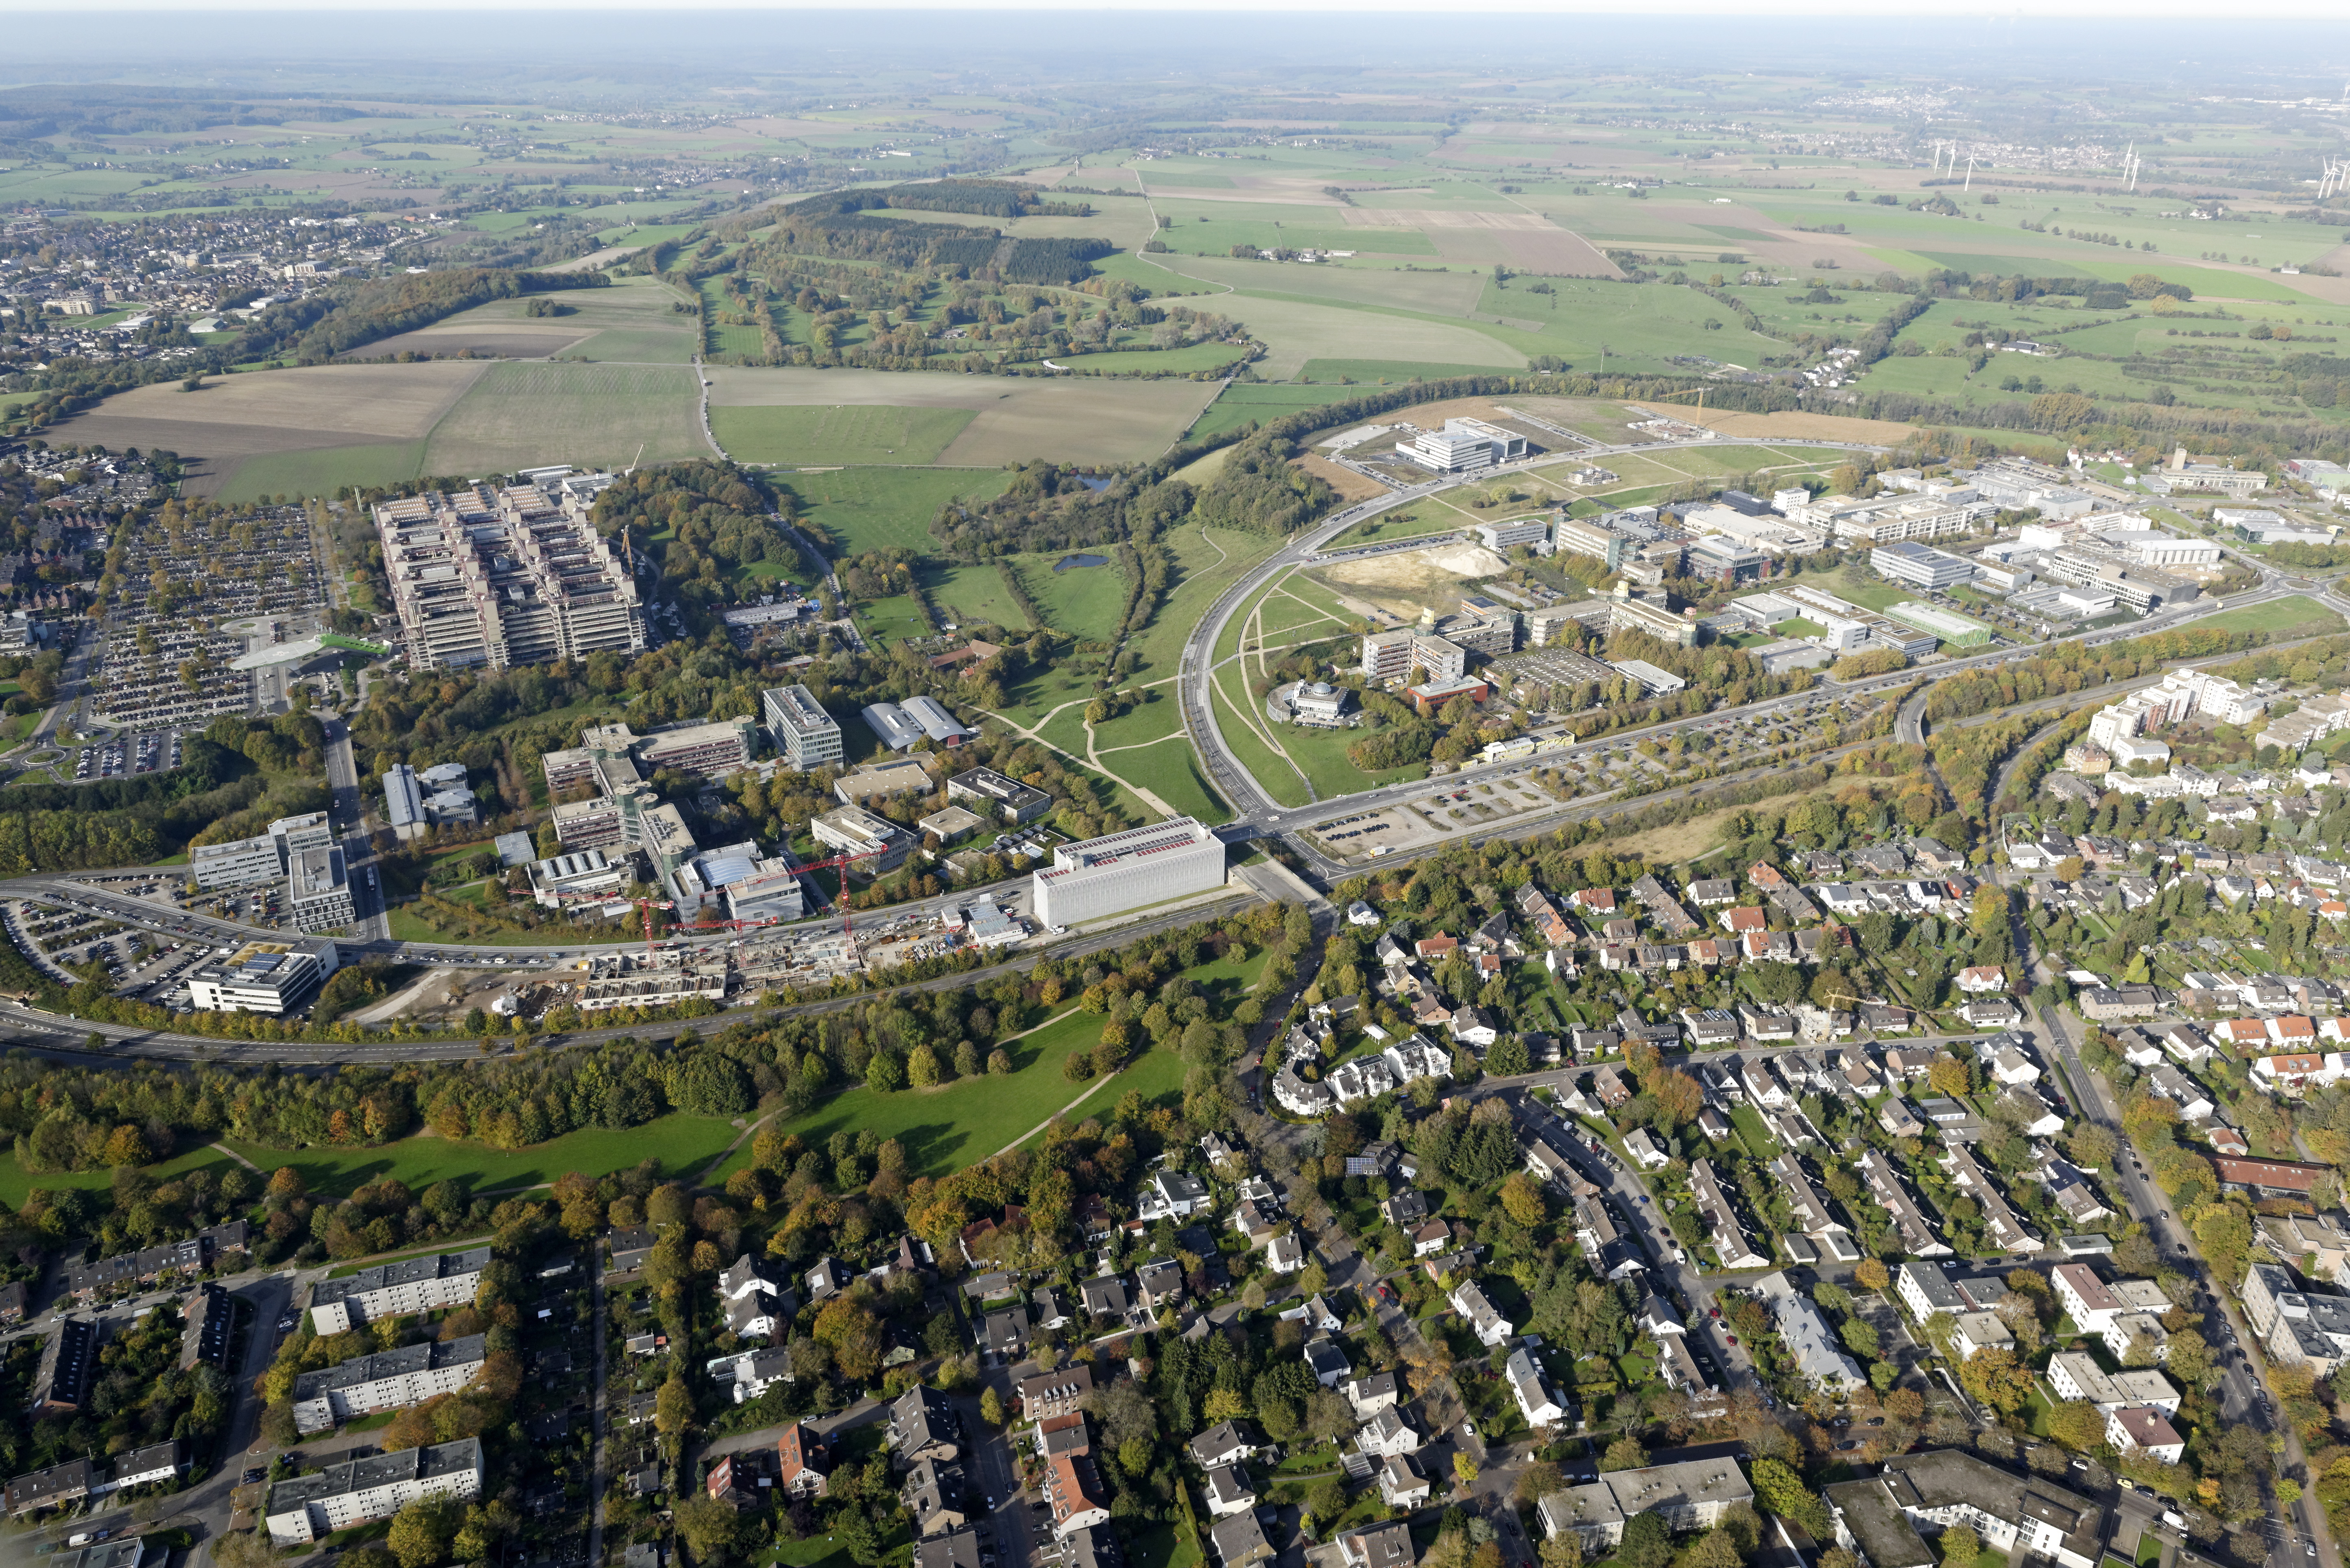 University Hospital Aachen and Campus Melaten